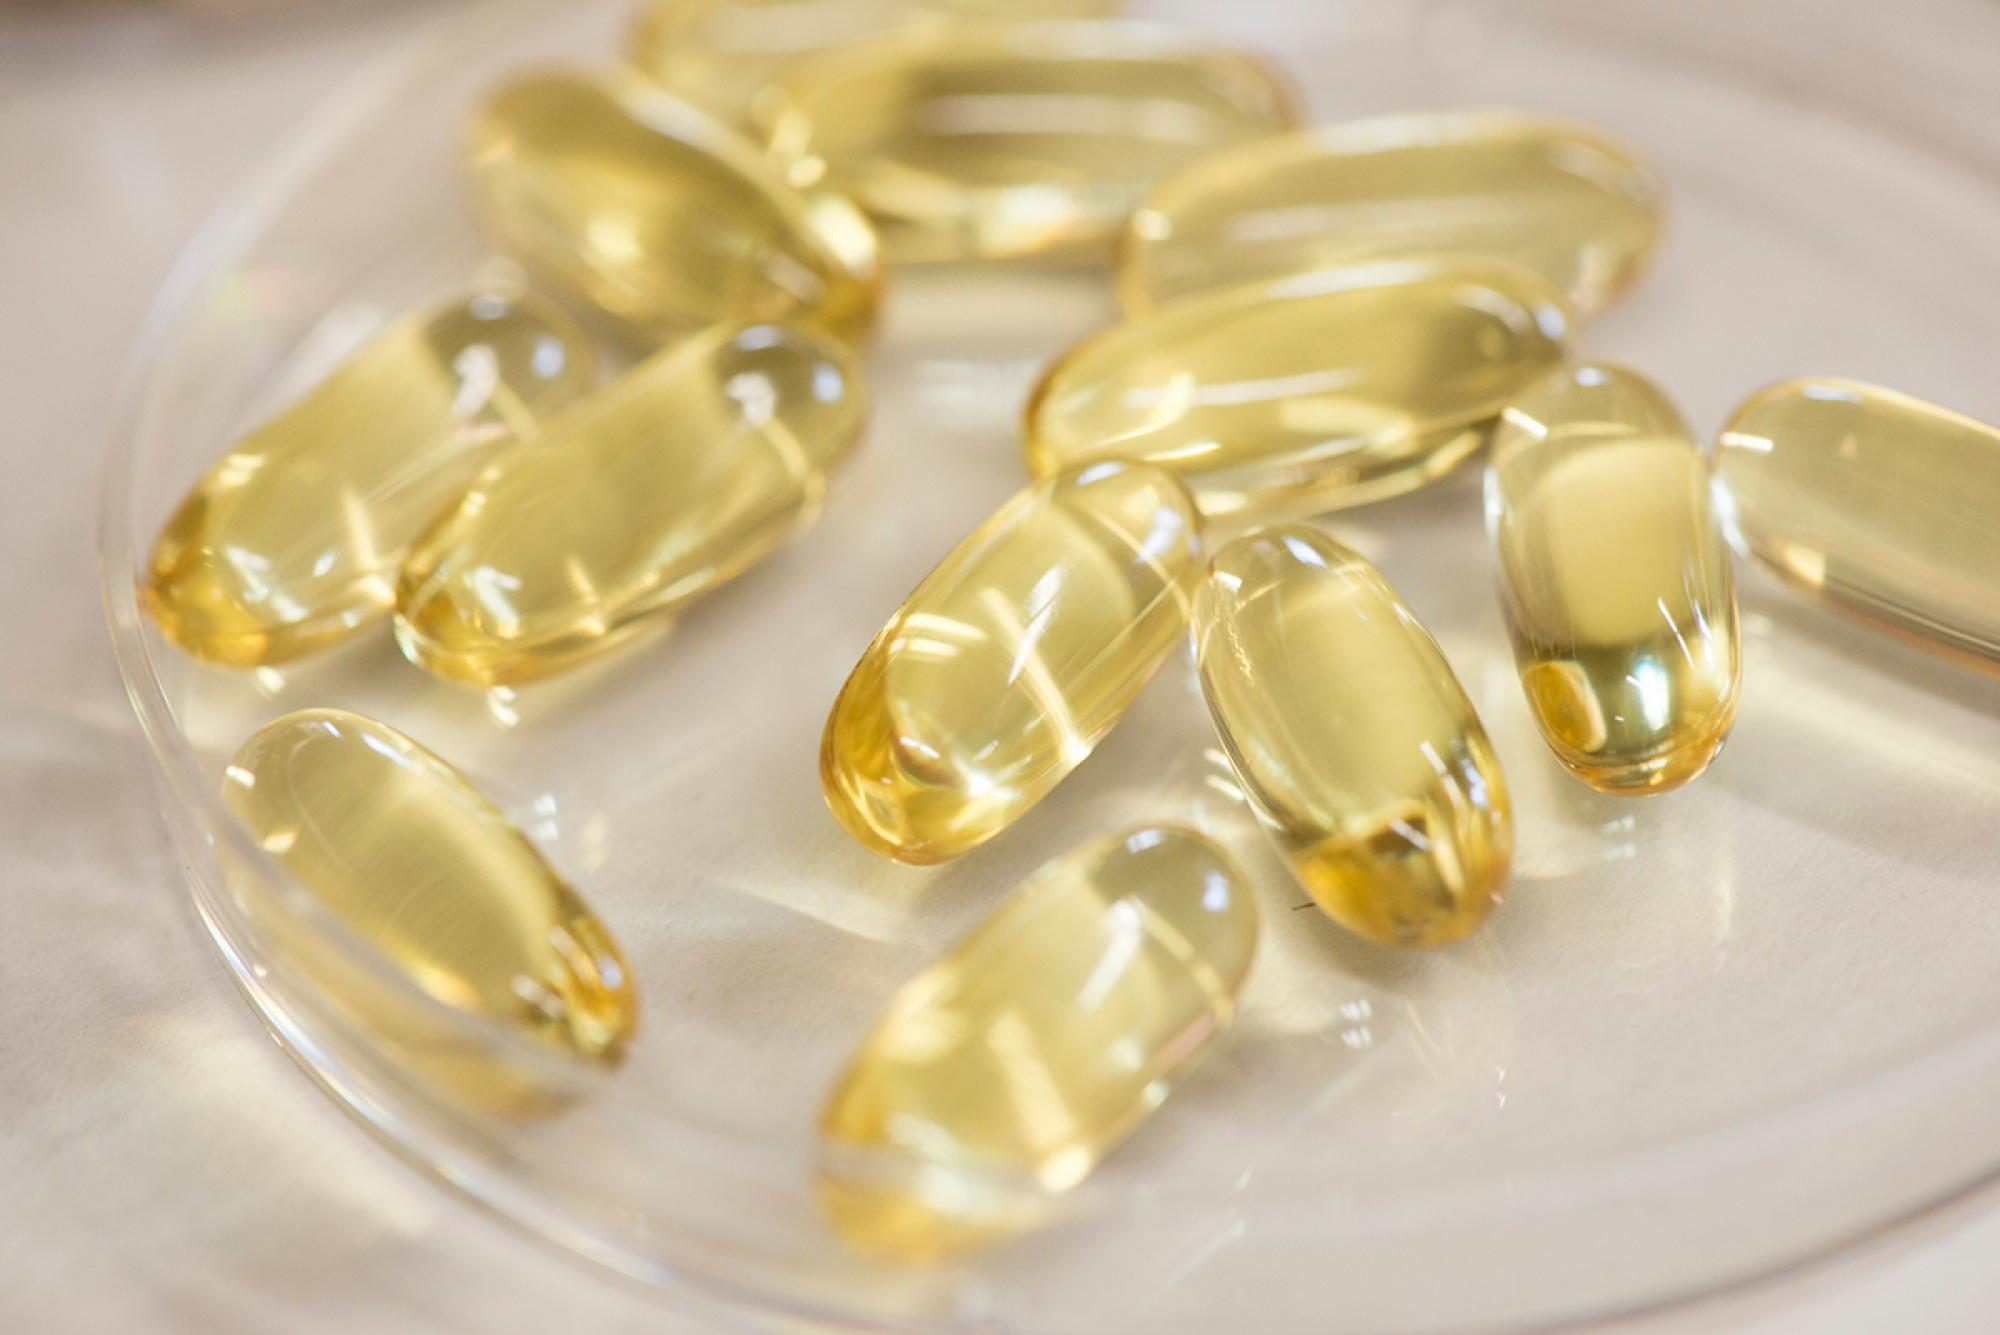 """Dietary supplements containing omega-3 fatty acids are not as strictly regulated by the FDA. They should not be used in place of prescription medication for the long-term management of high triglycerides,"" Skulas-Ray said."